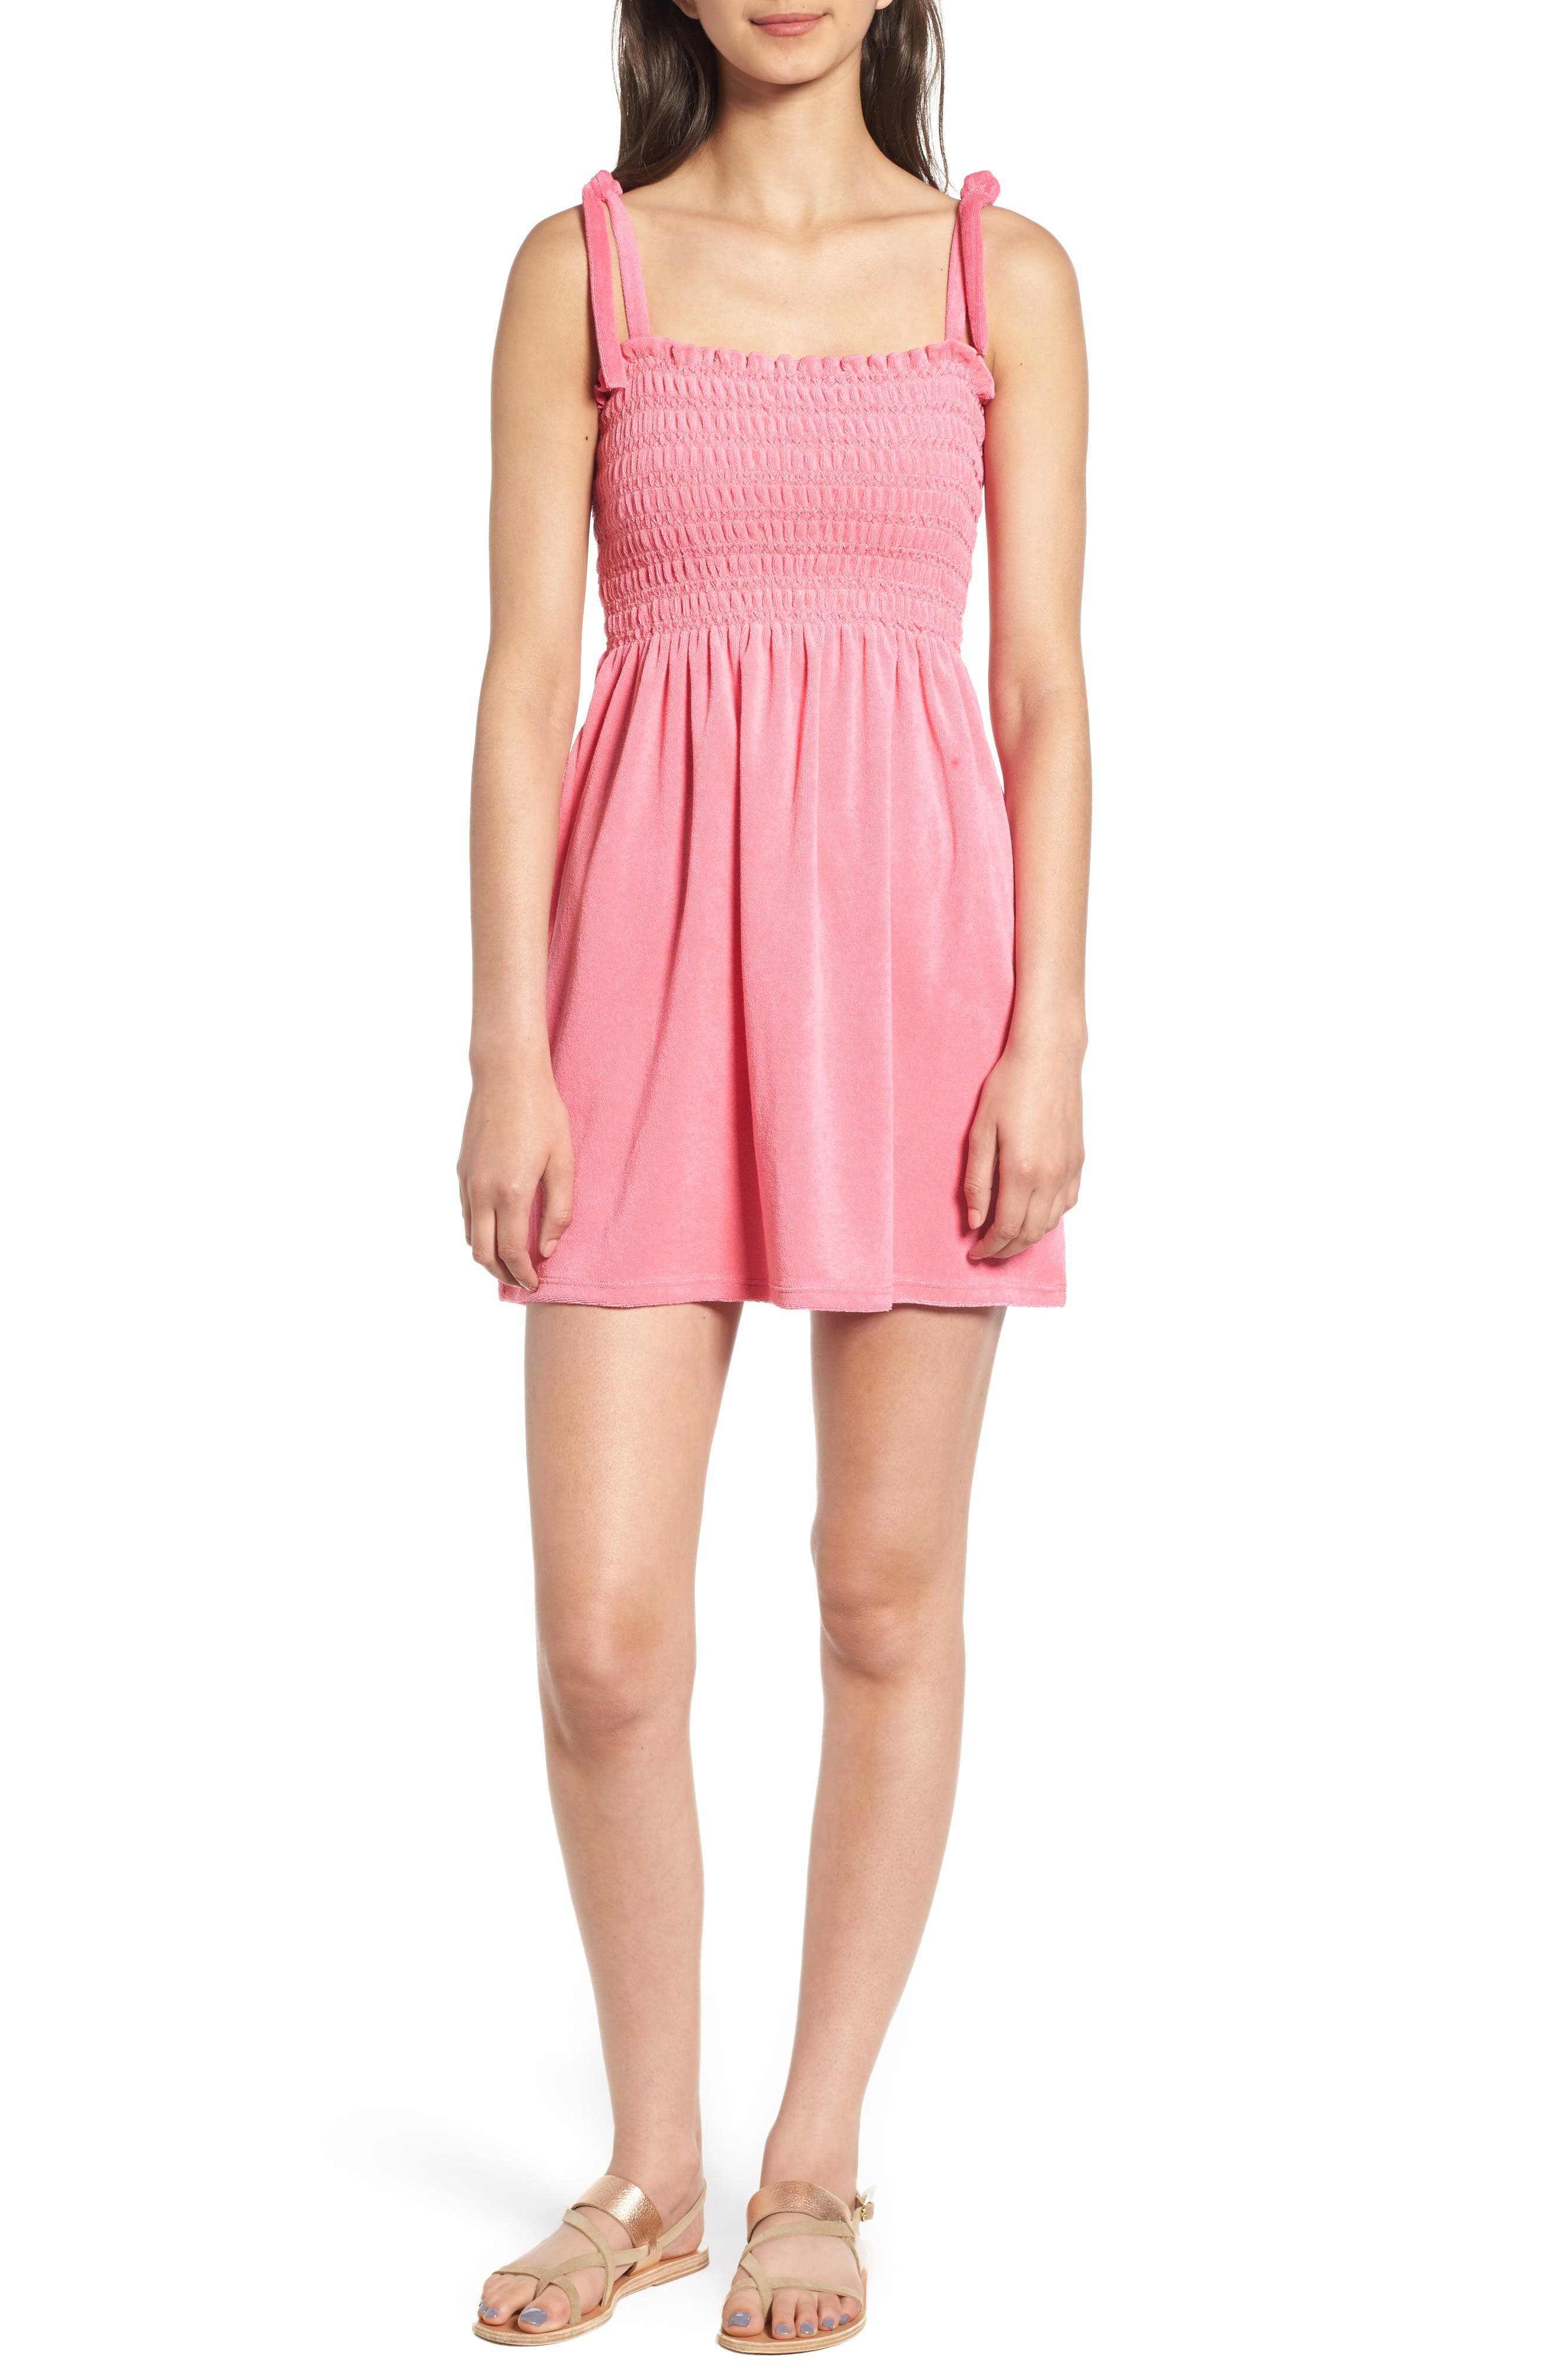 Main Image - Juicy Couture Venice Beach Microterry Smocked Dress